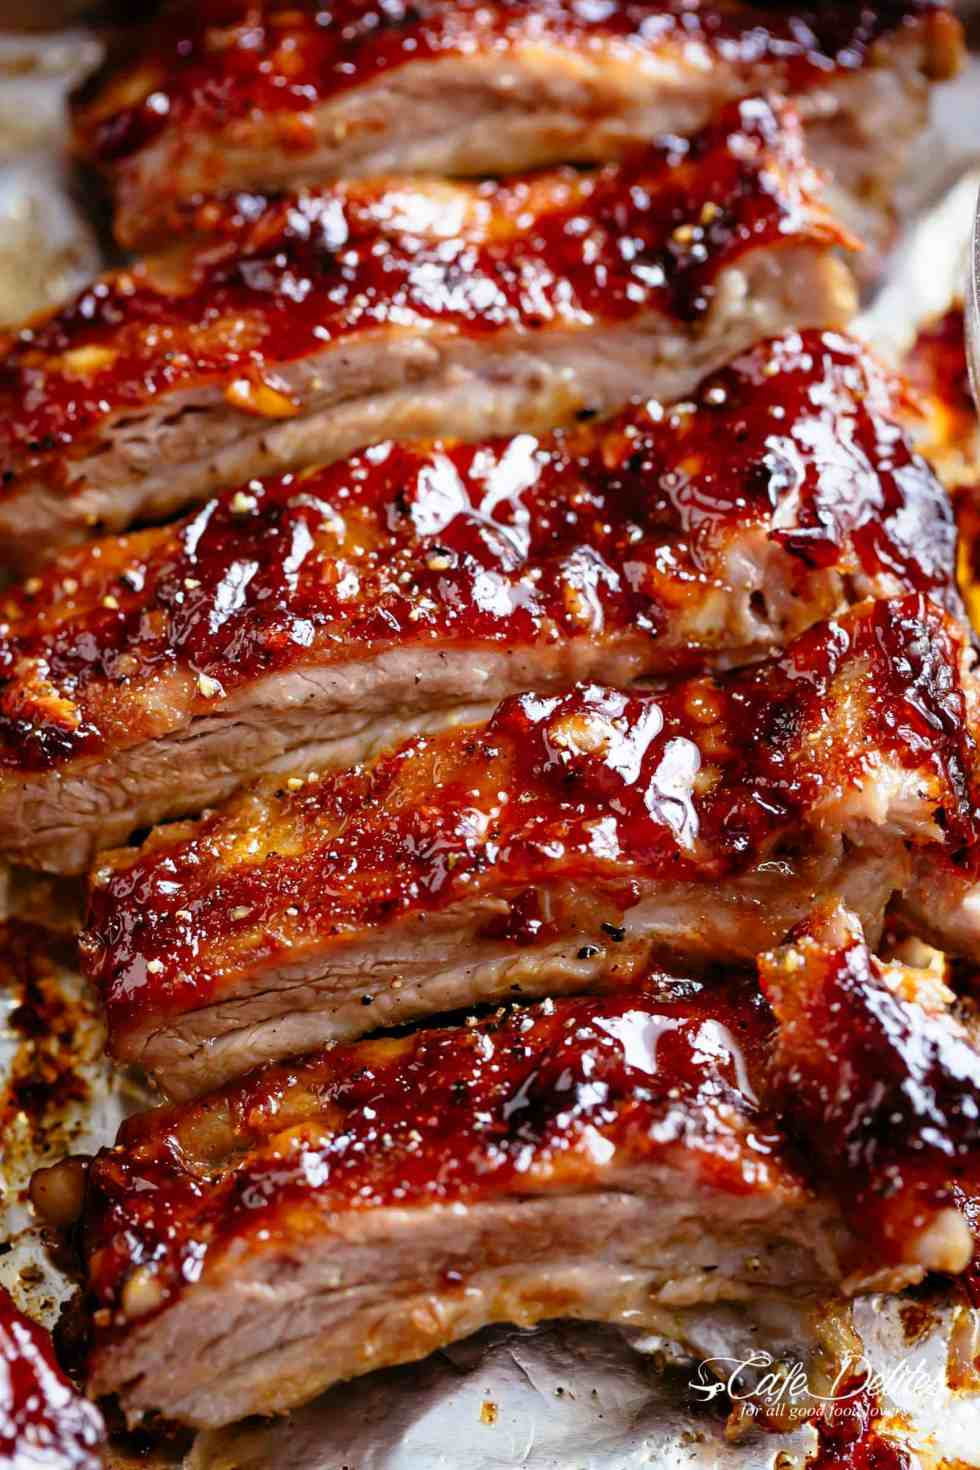 American Ribs Oven Baked and slathered in the most delicious barbecue sauce! | cafedelites.com